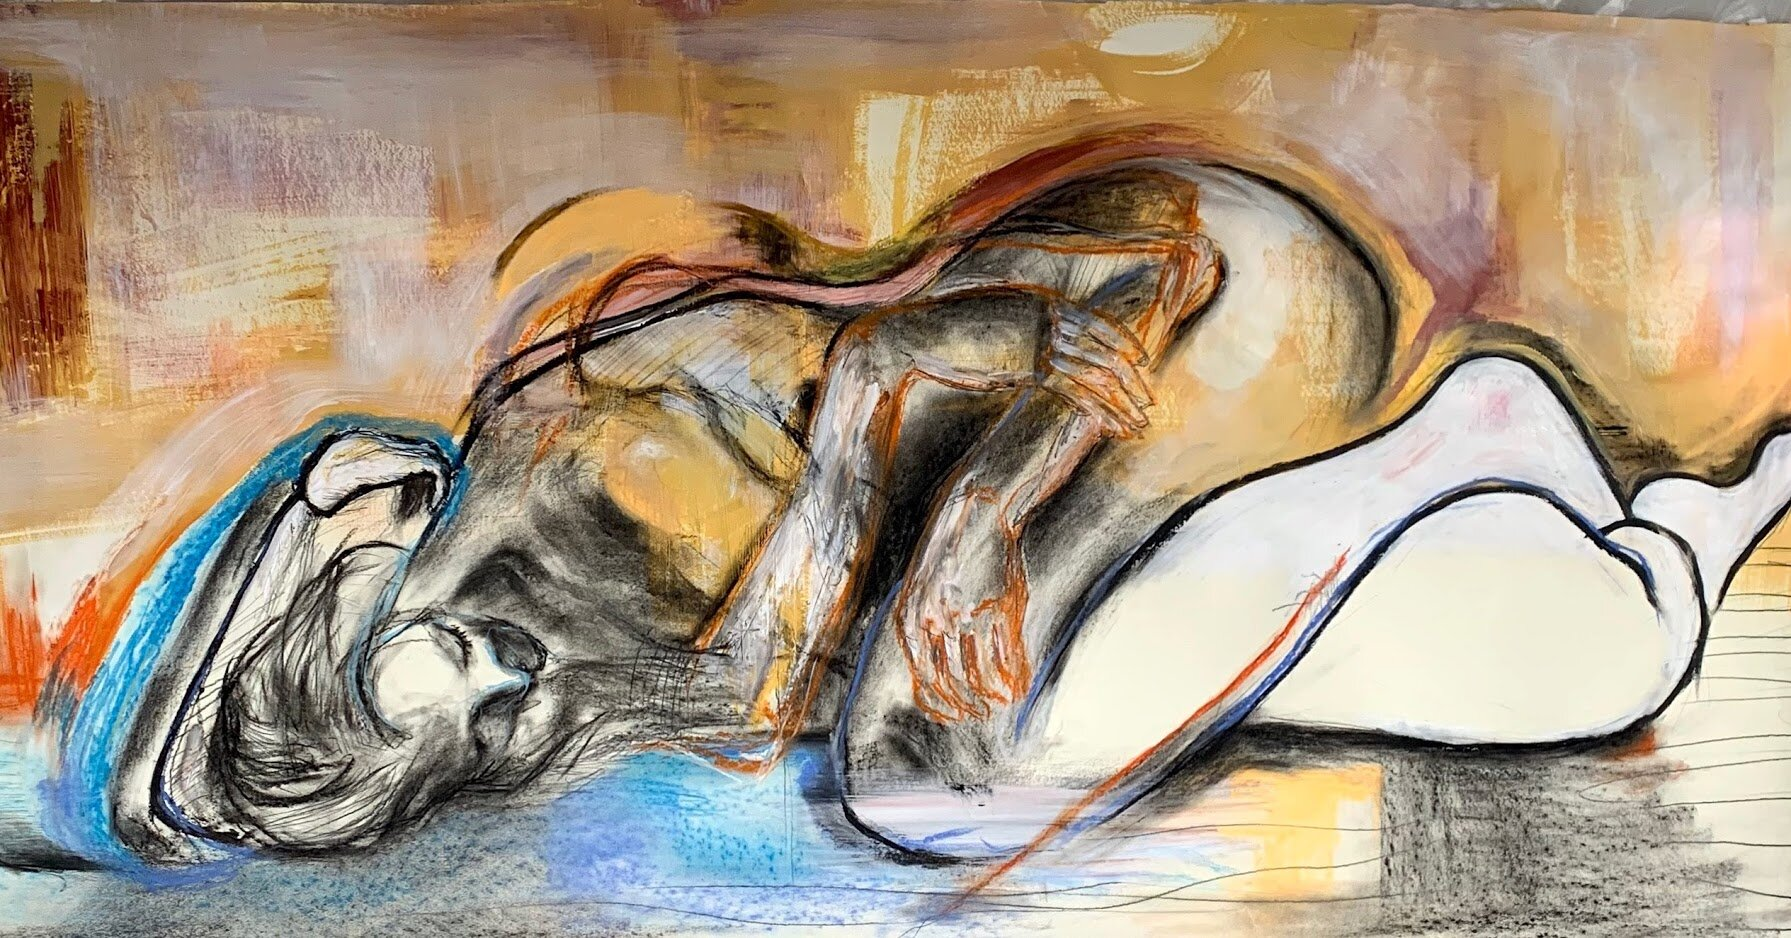 """""""In My Arms"""" - 5' x 2.5', Acrylic, Gesso, Oil Pastel, Soft Pastel, Charcoal, Pencil on Paper"""